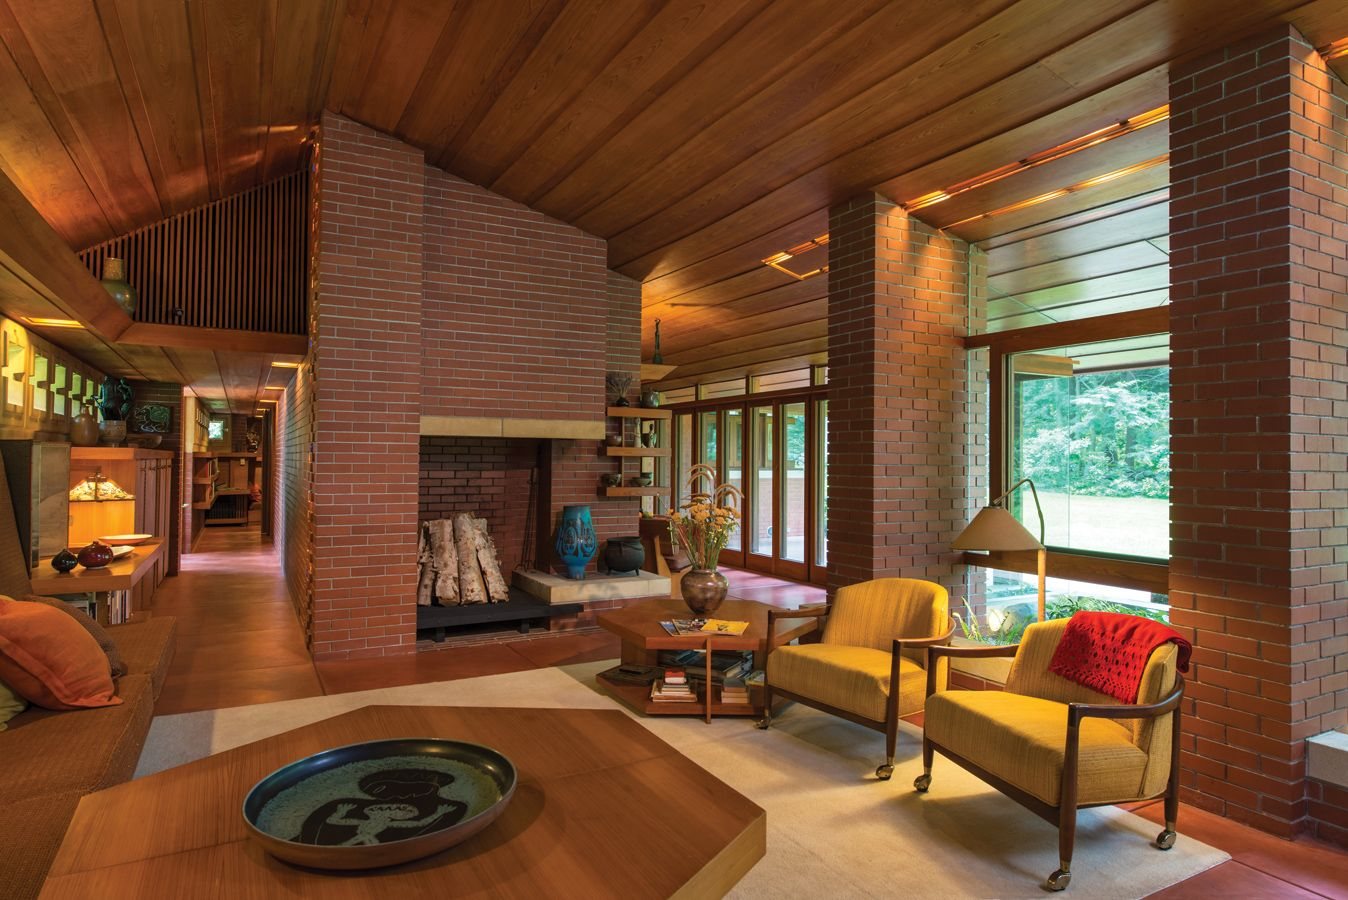 An architectural work of art new hampshire home may - Frank lloyd wright house interiors ...